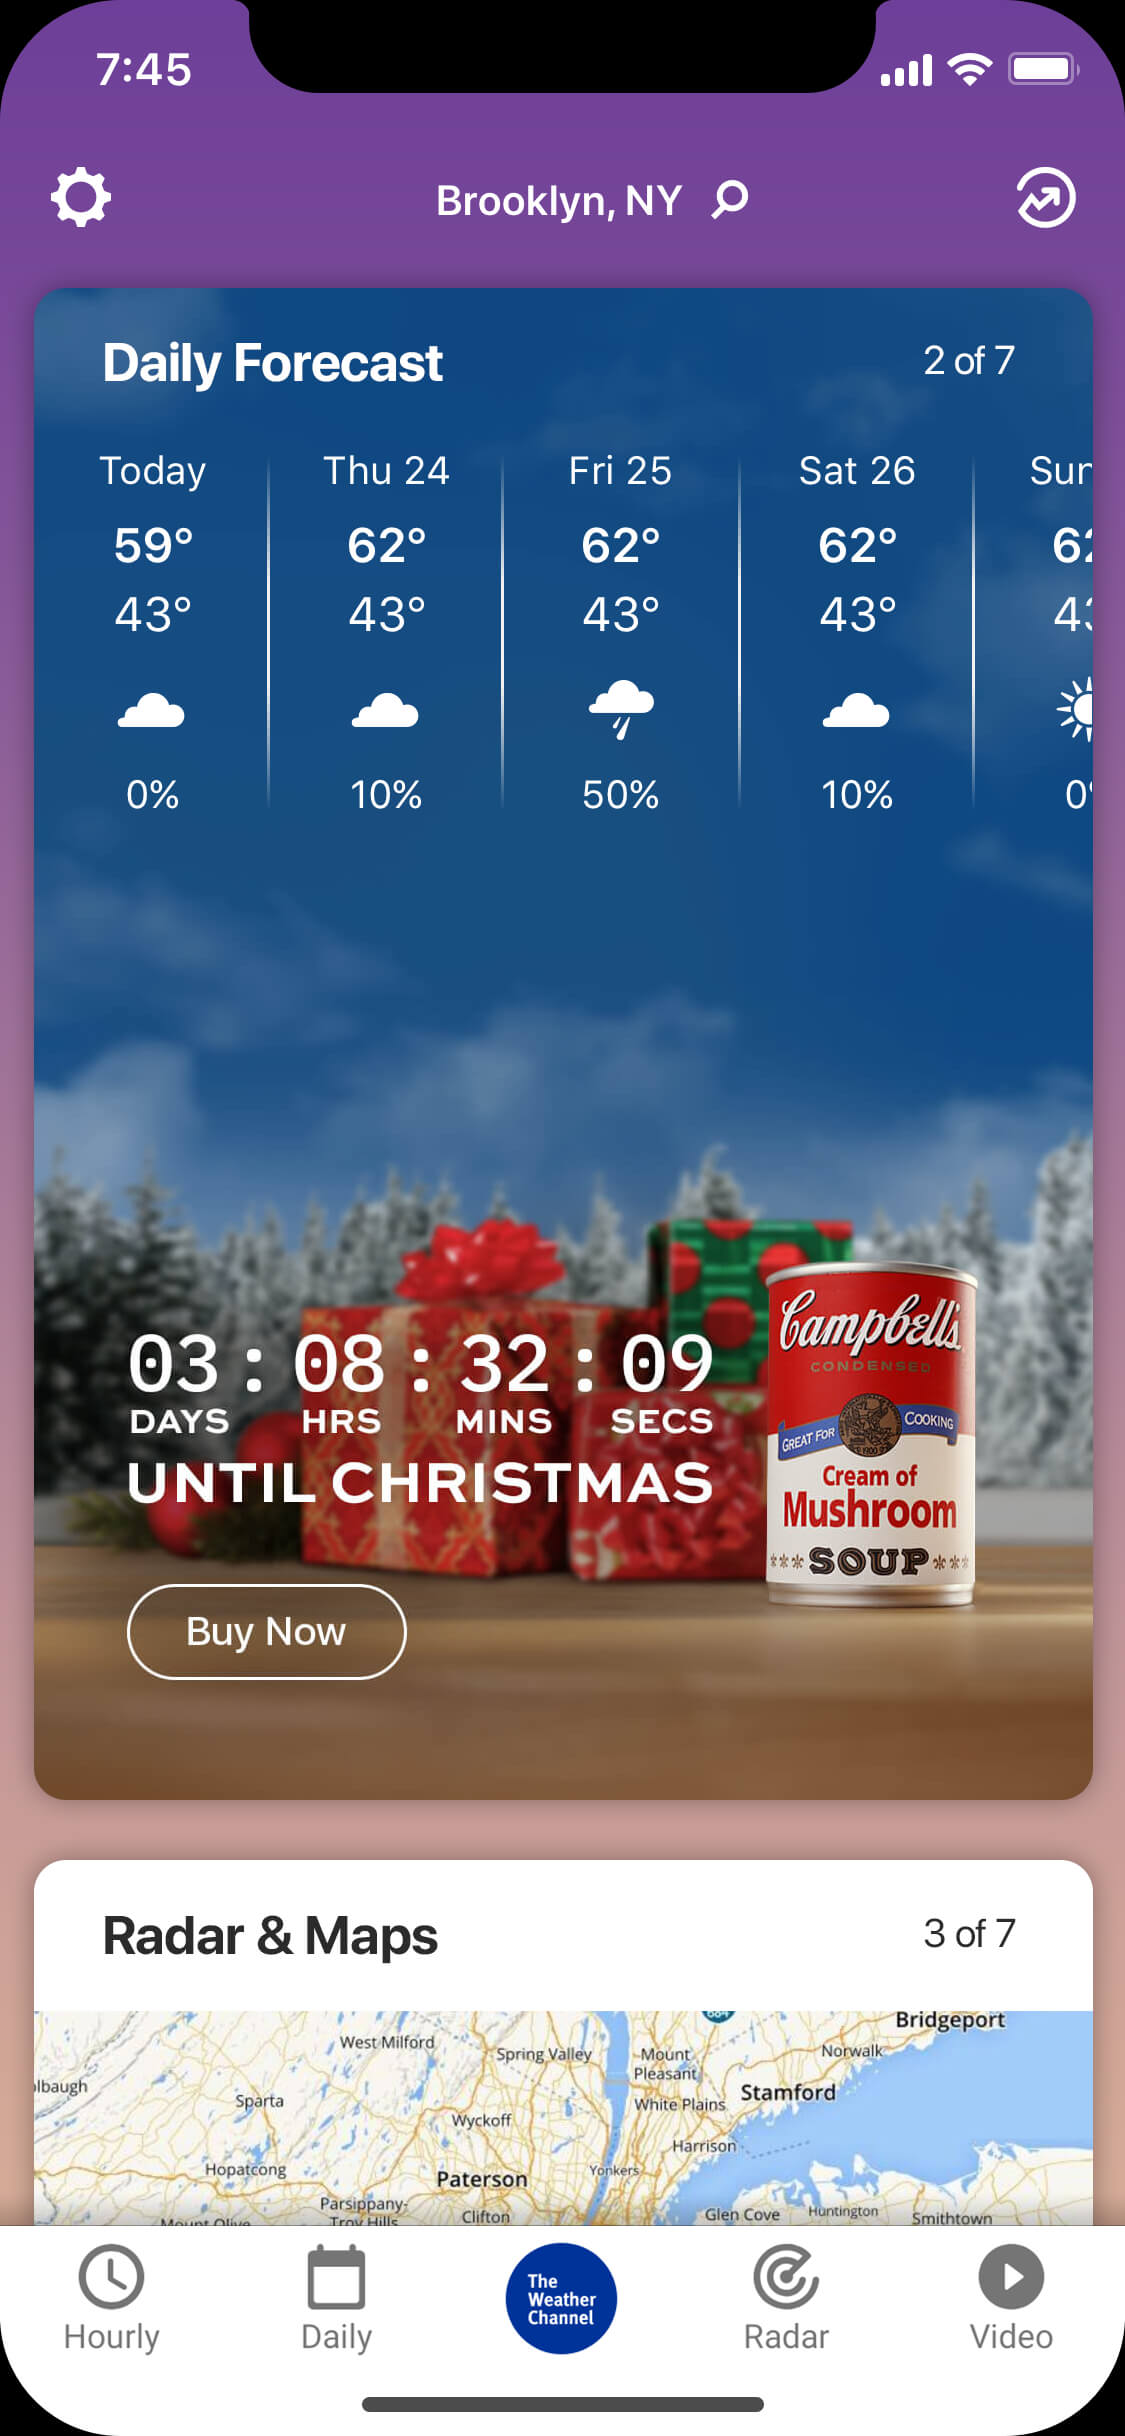 campbells-xmas-if_cloudy-day